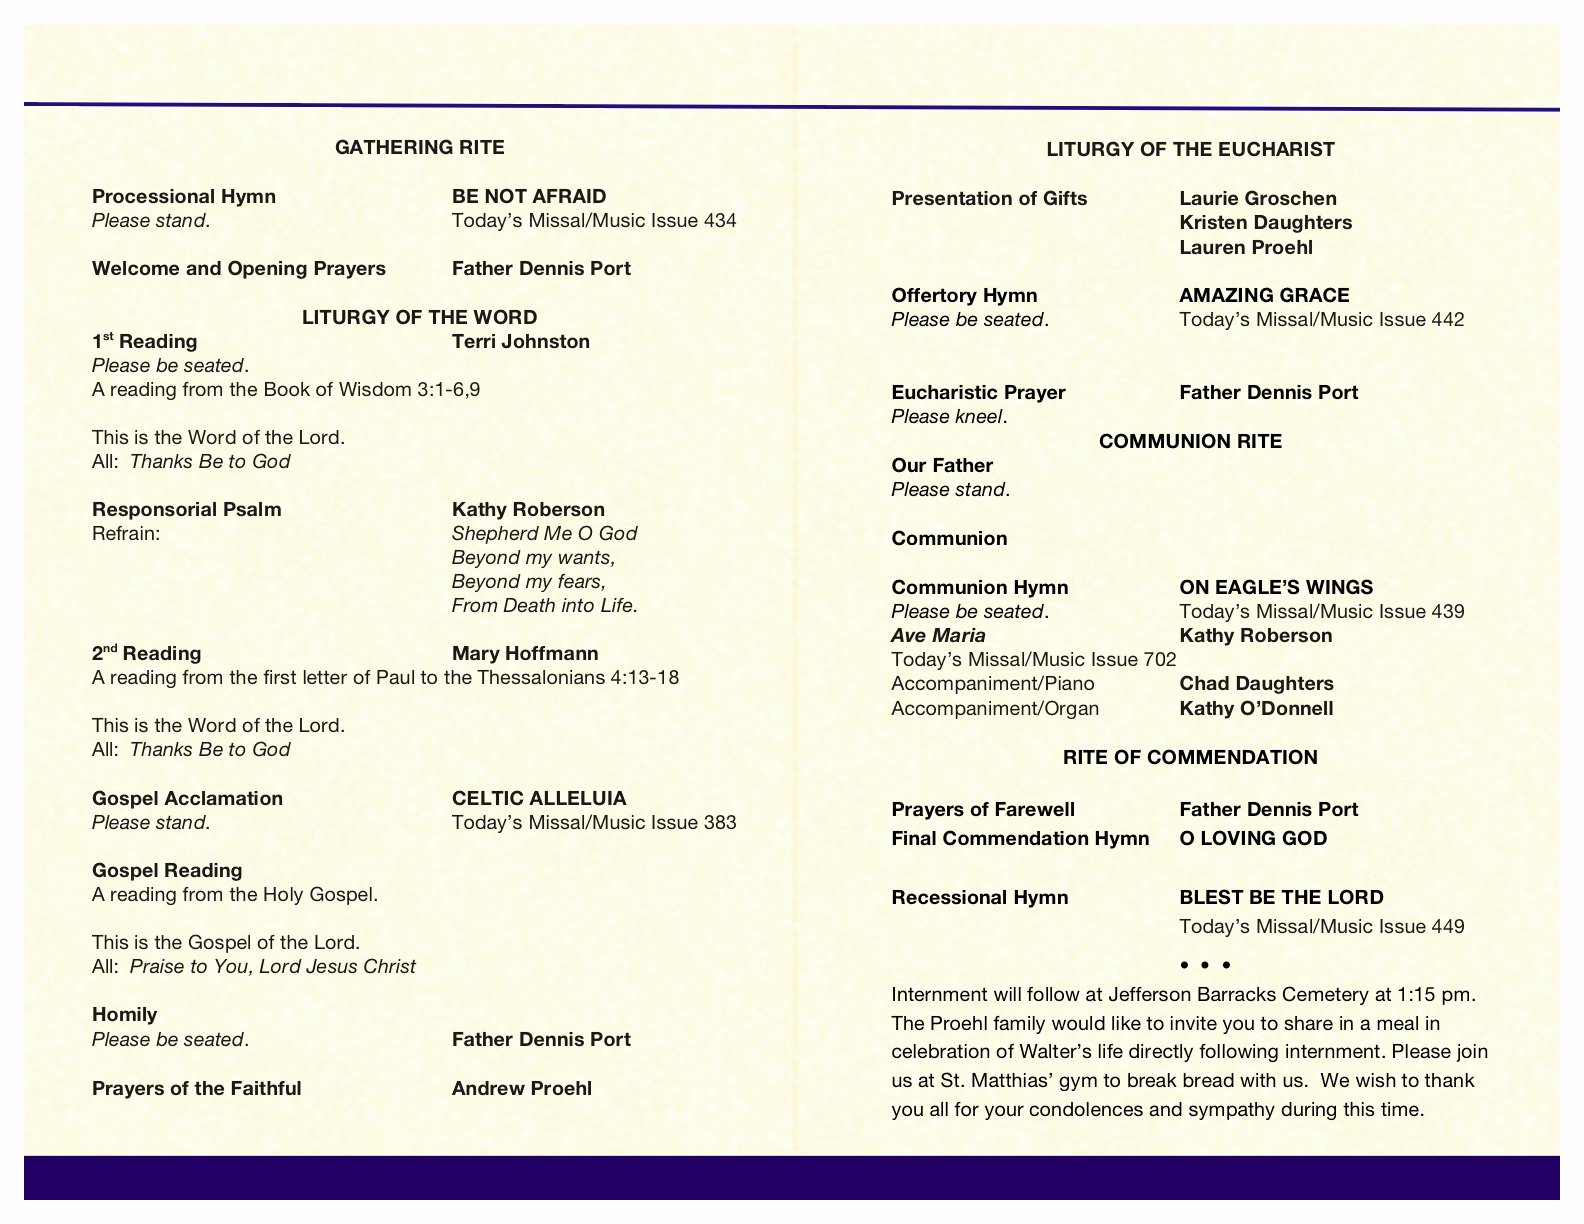 Funeral Mass Program Templates Lovely Catholic Wedding Program Templates with Mass Catholic